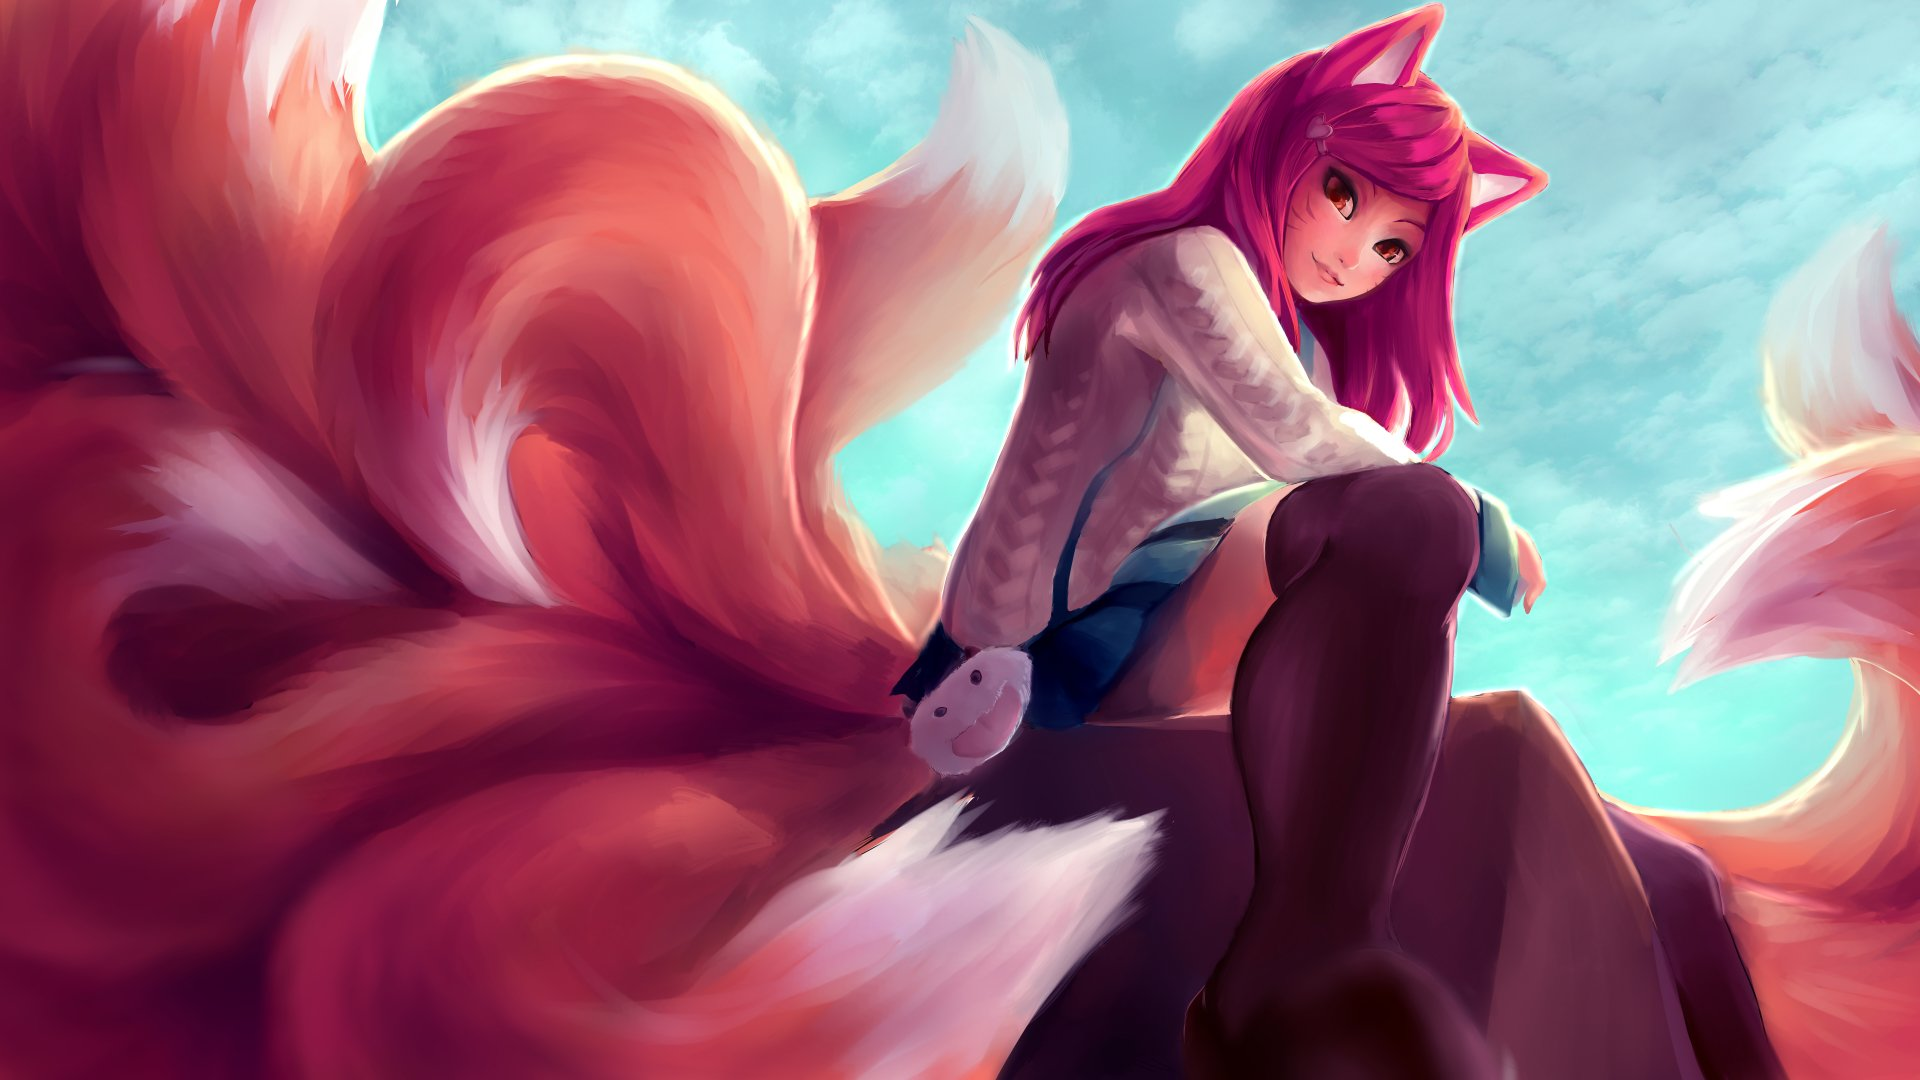 Video Game - League Of Legends  Ahri (League Of Legends) Wallpaper